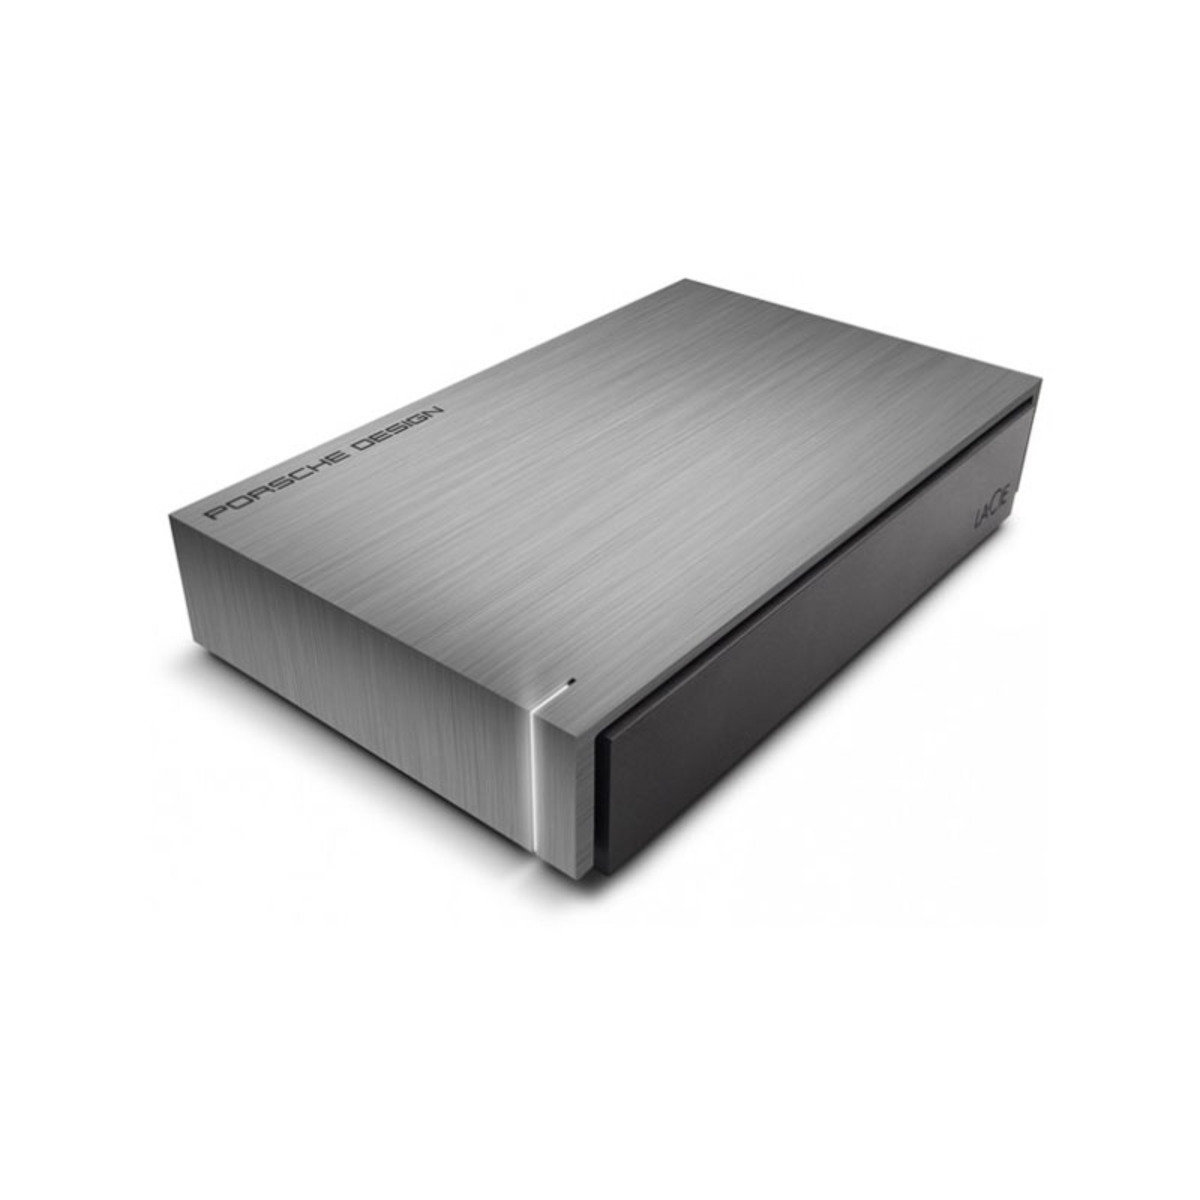 Porsche Design Desk 3TB USB3.0 3.5吋 外置硬碟 302003